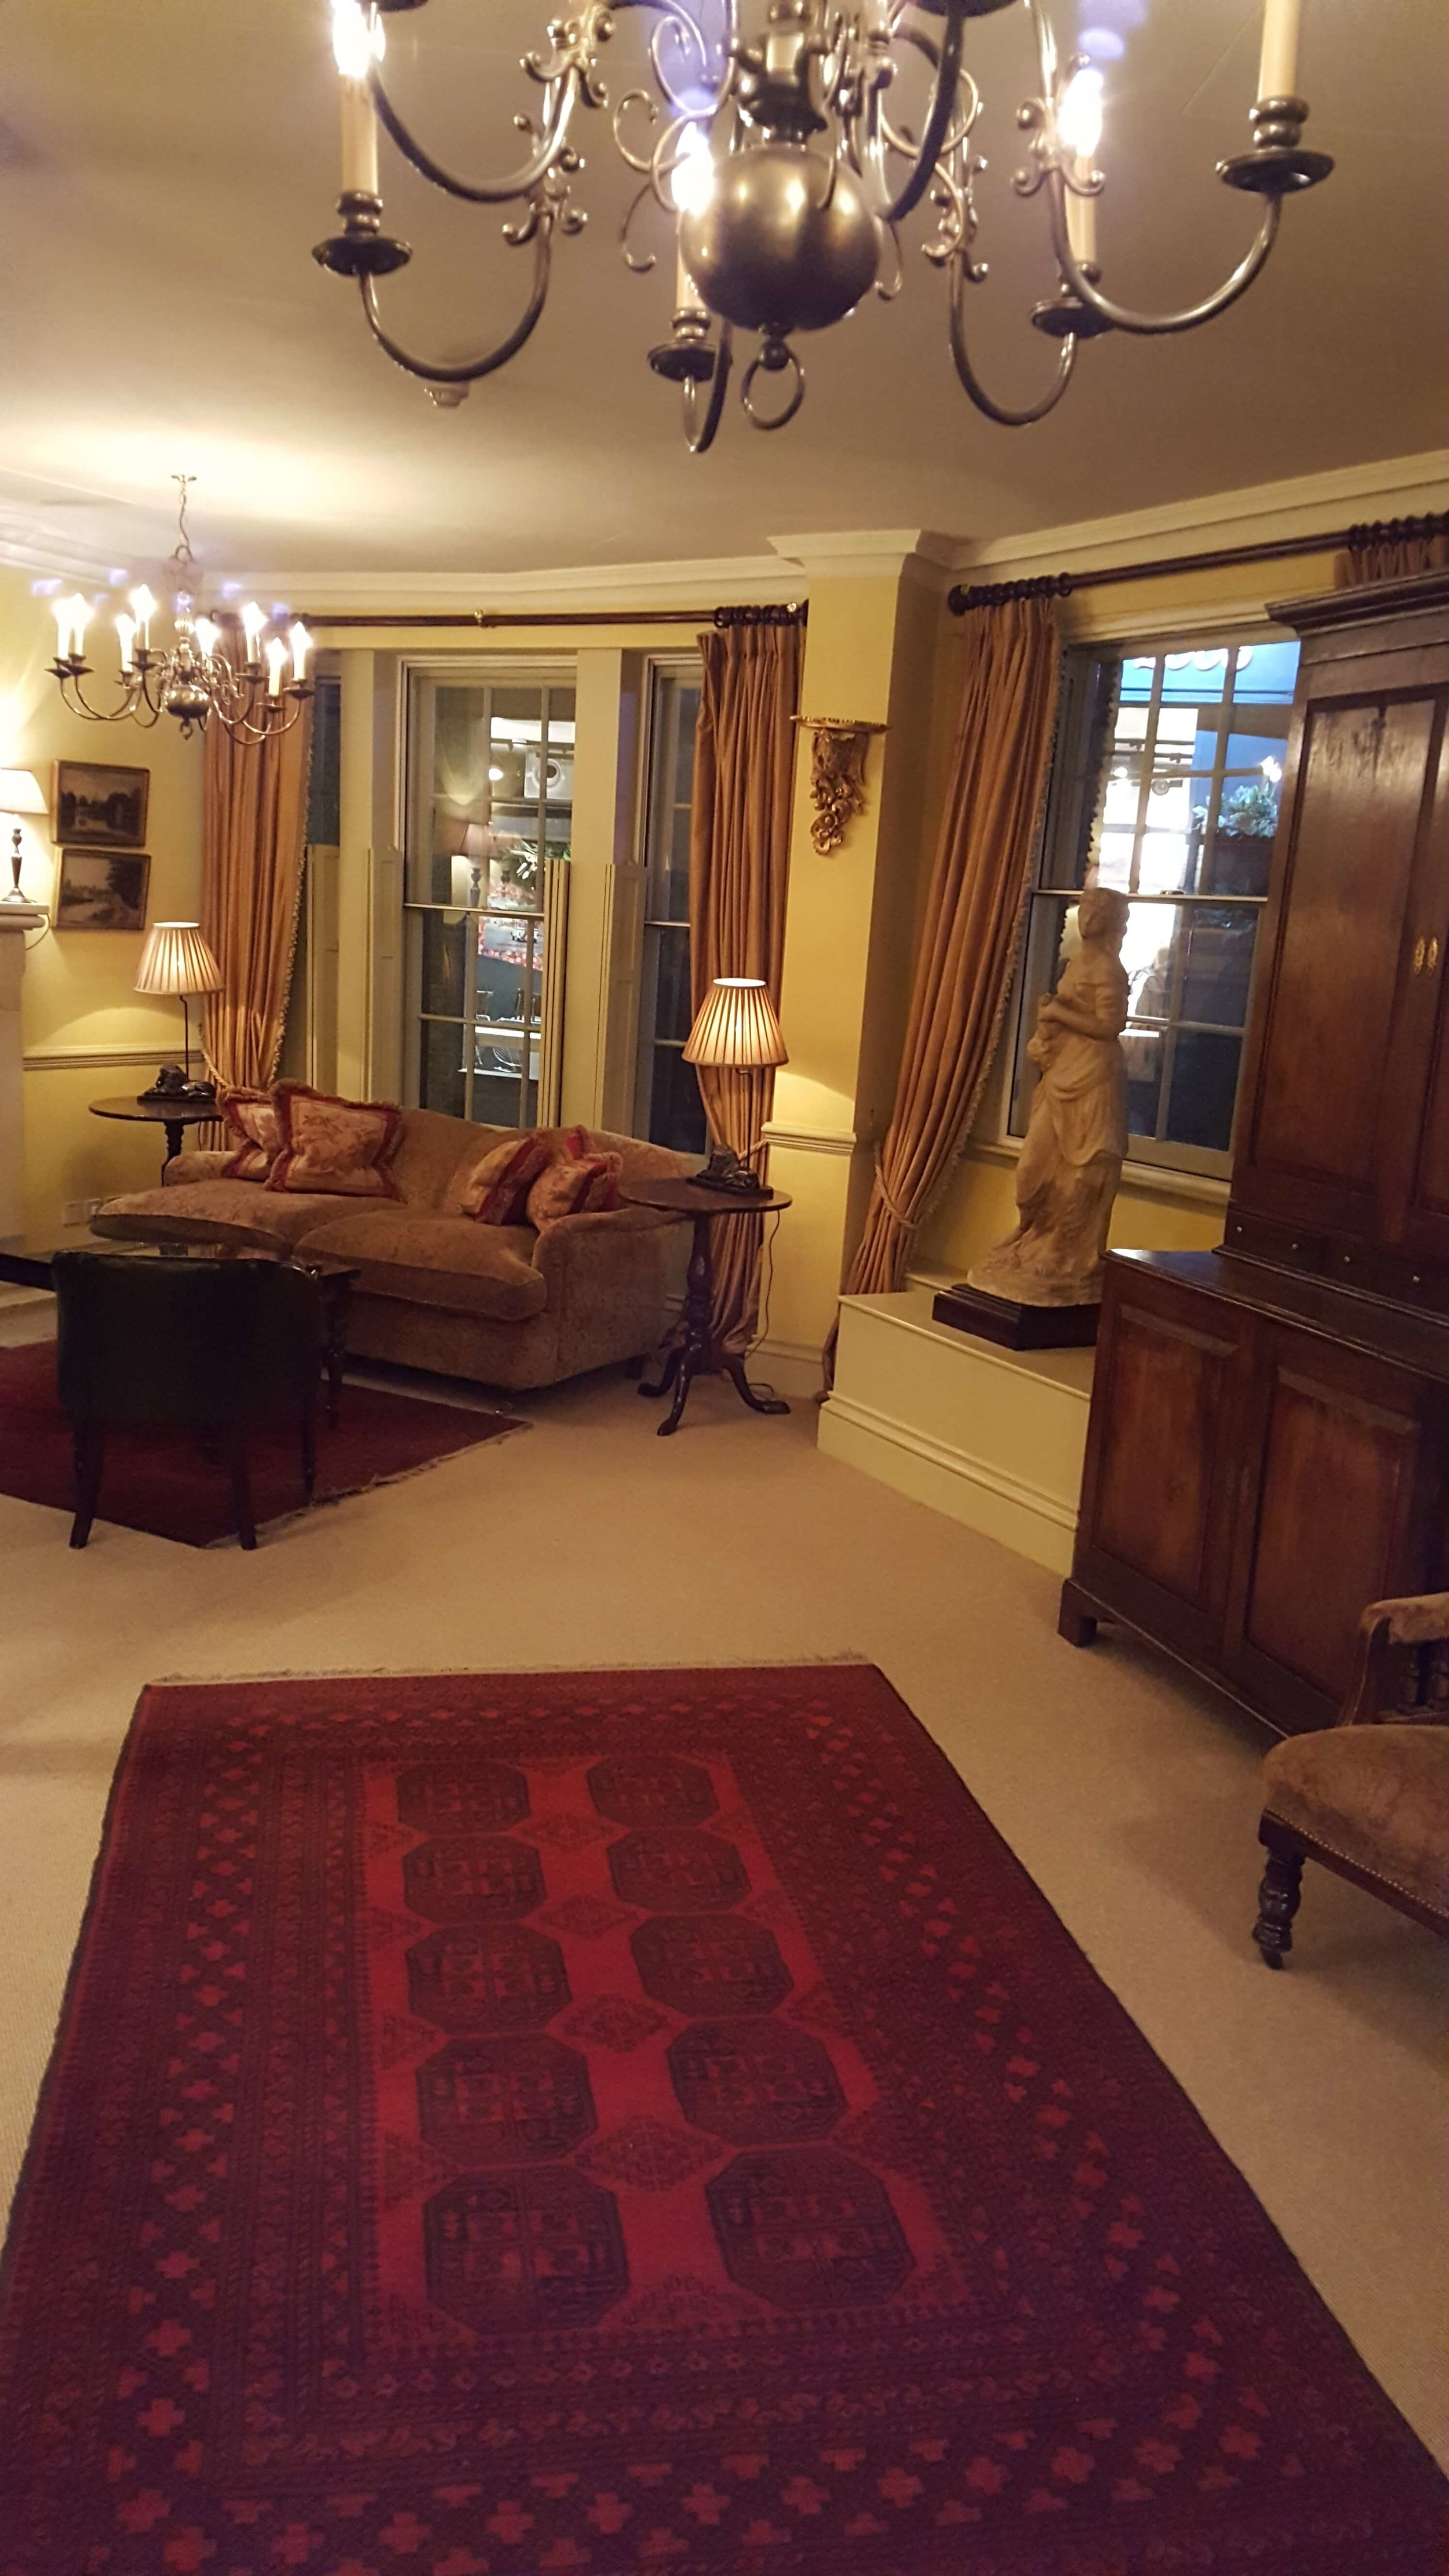 Our own private parlor adjacent to the board room where we can share stories with one another over a proper cup of Earl Grey tea.